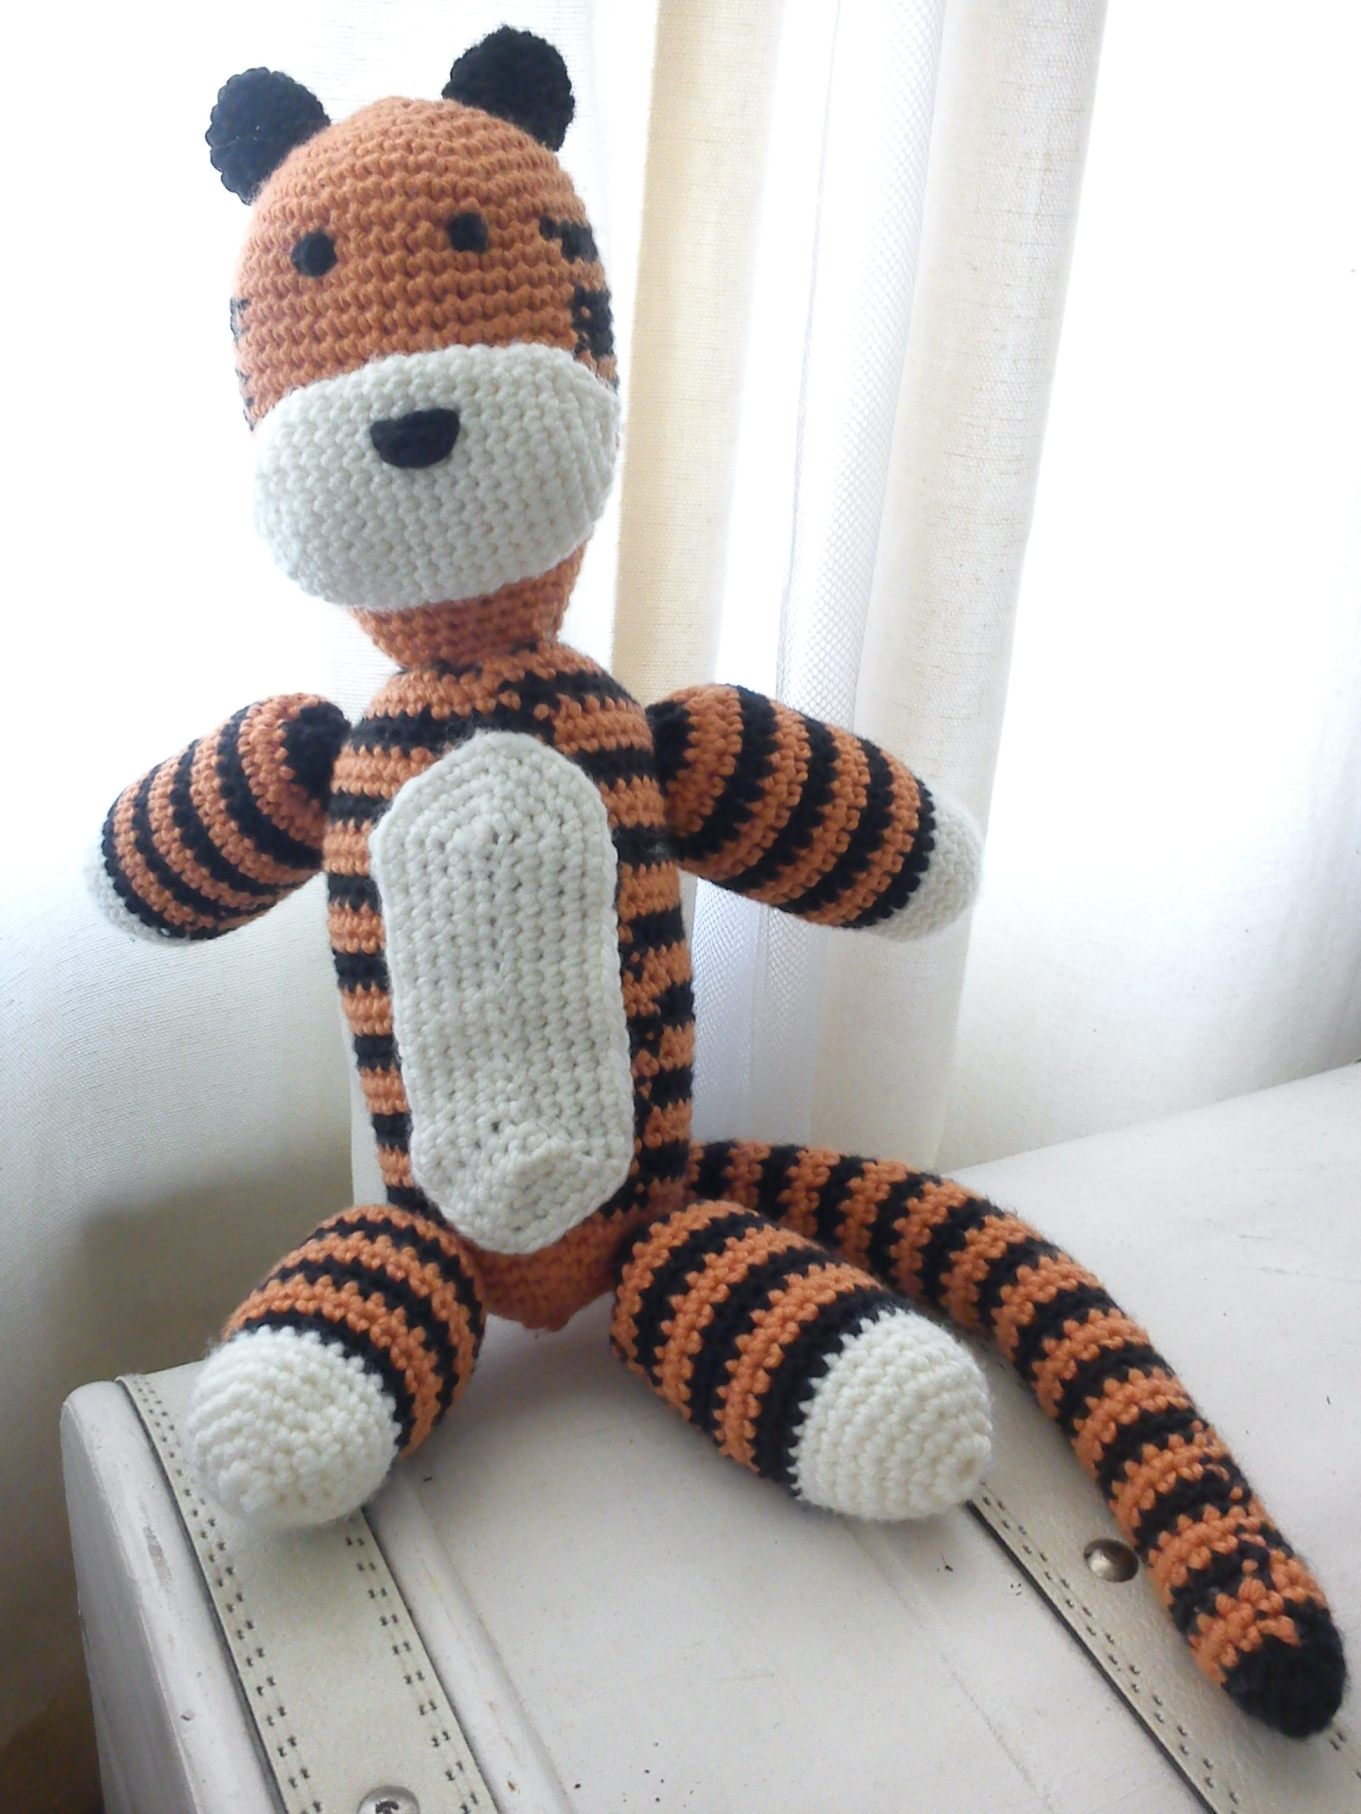 Hobbes Crocheted Toy